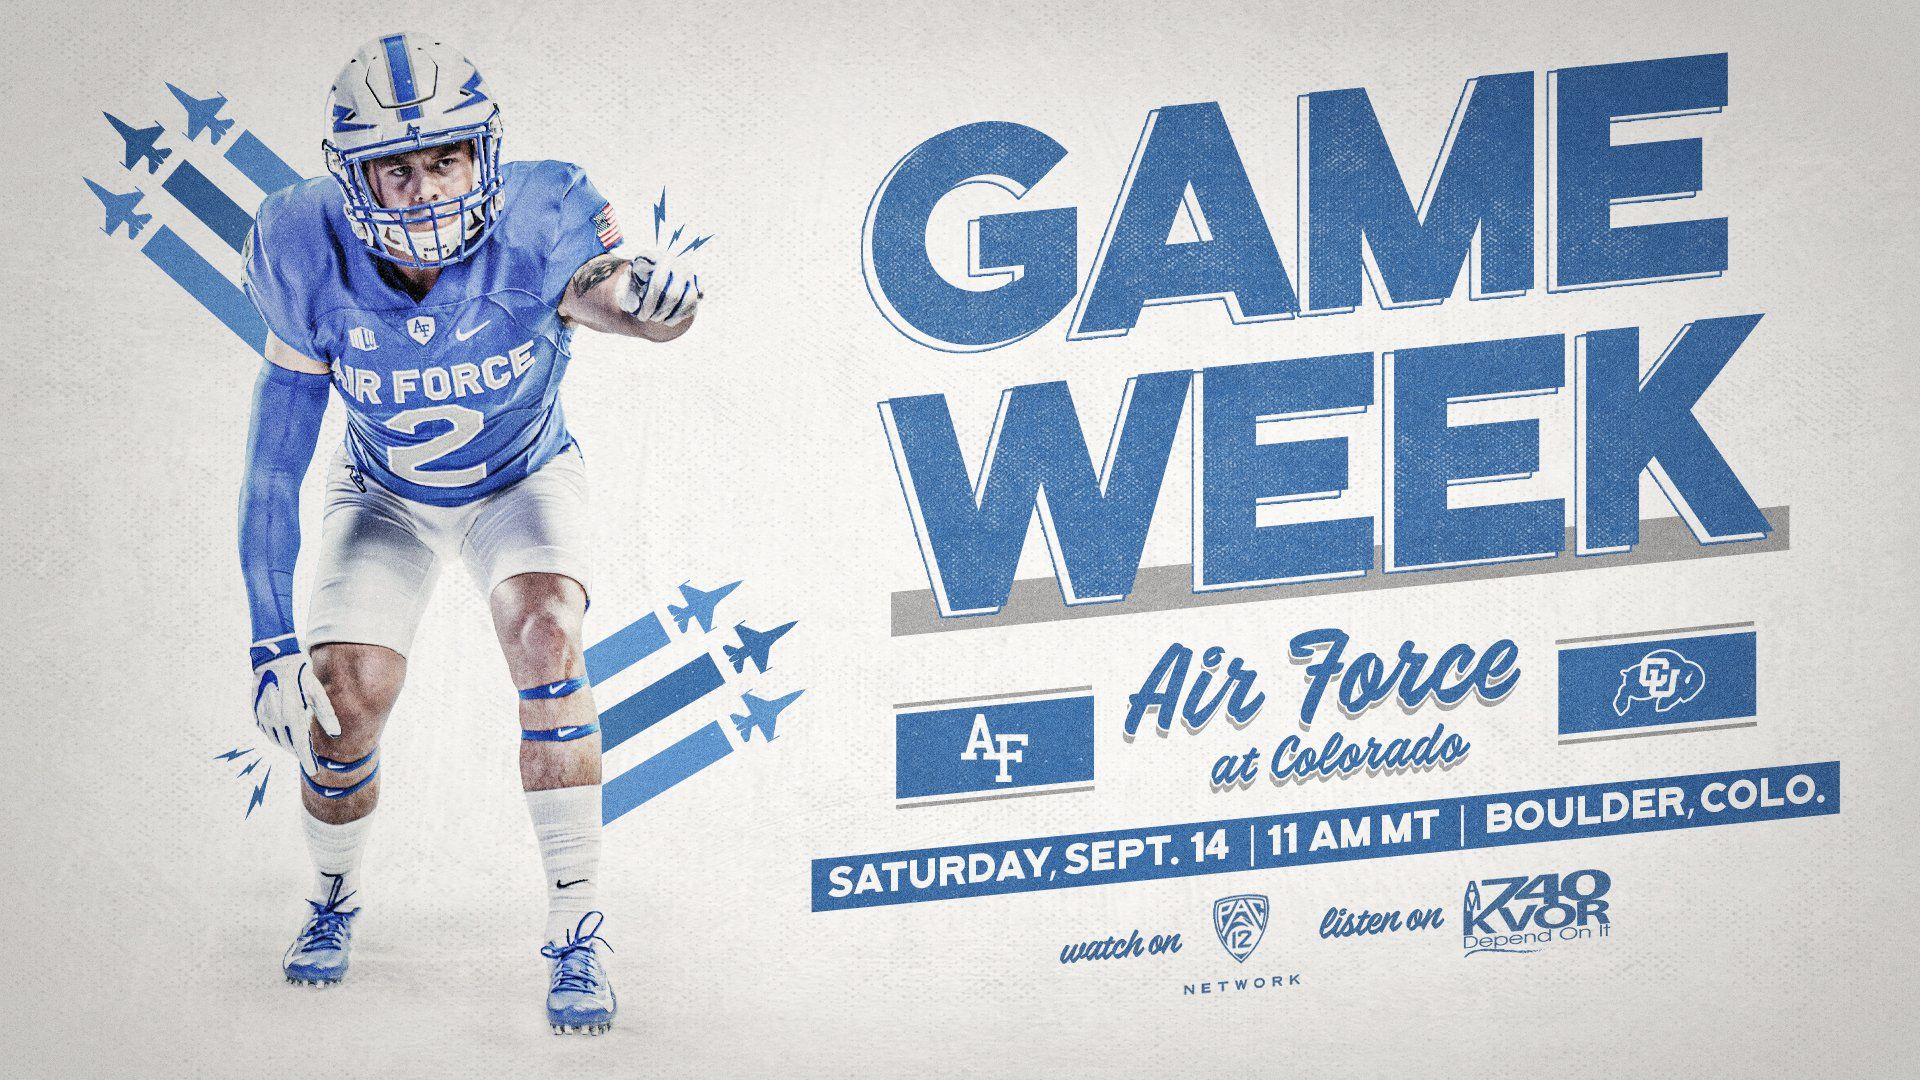 Air Force Football on (With images) Football, Air force